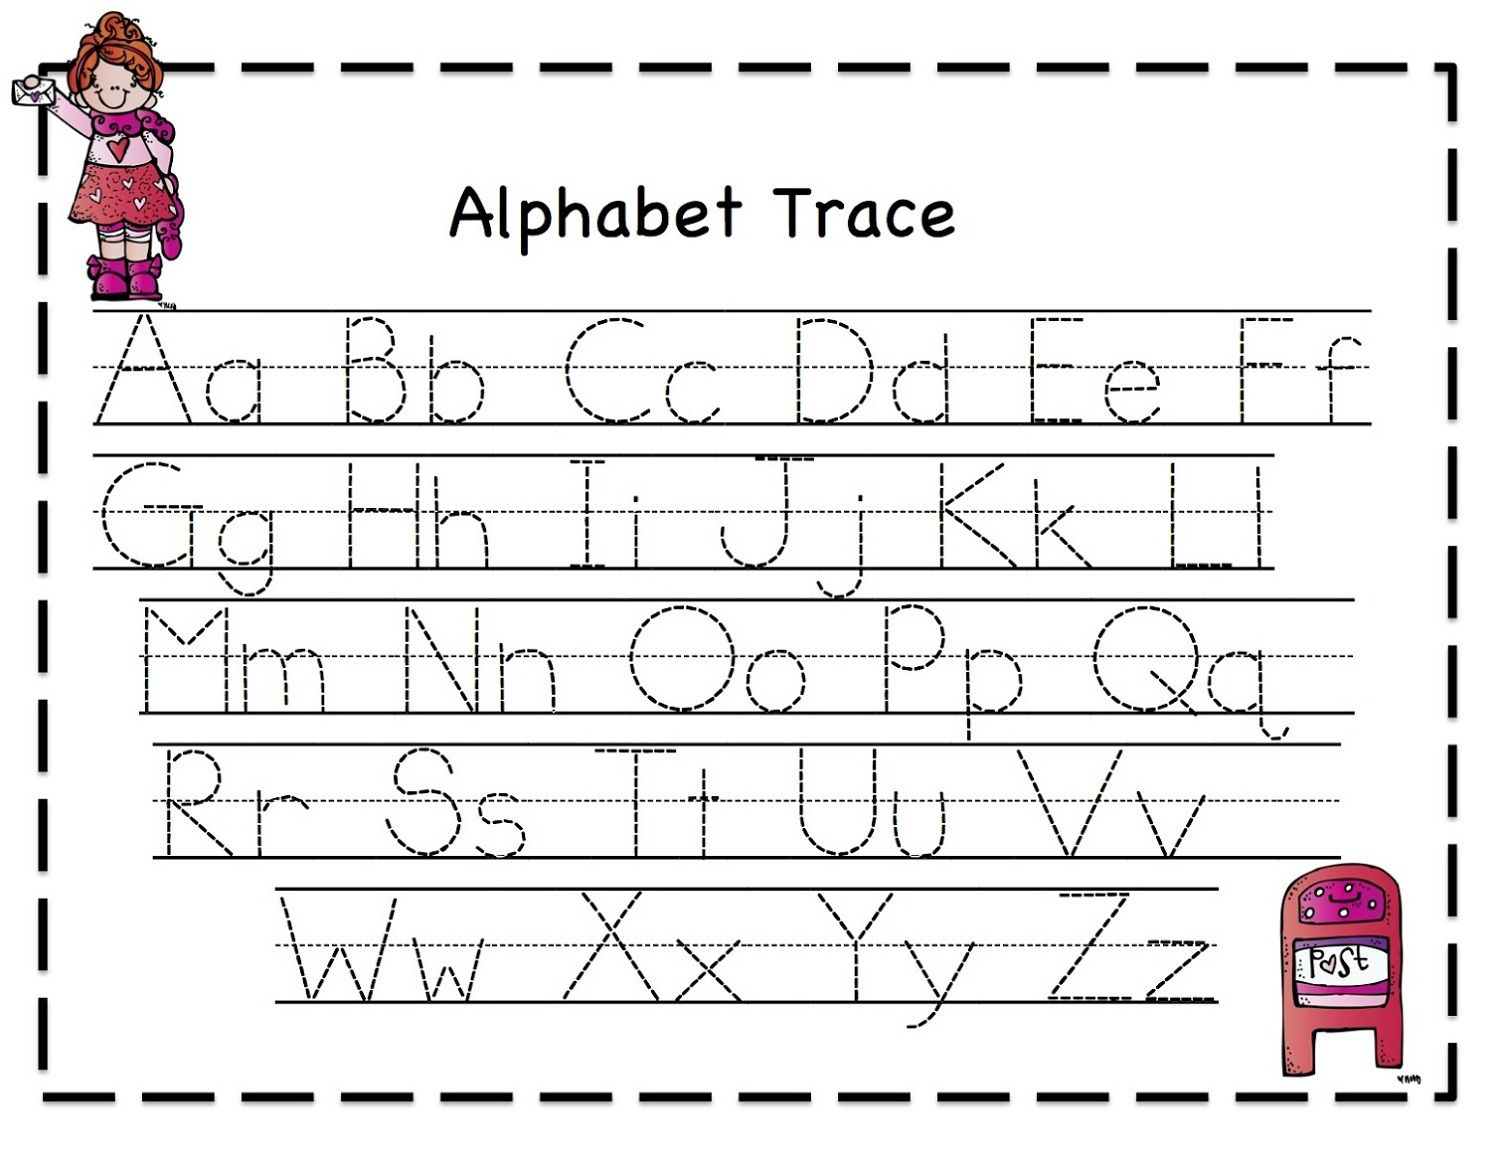 tracing letters for girl activities alphabet tracing worksheets tracing letters abc tracing. Black Bedroom Furniture Sets. Home Design Ideas